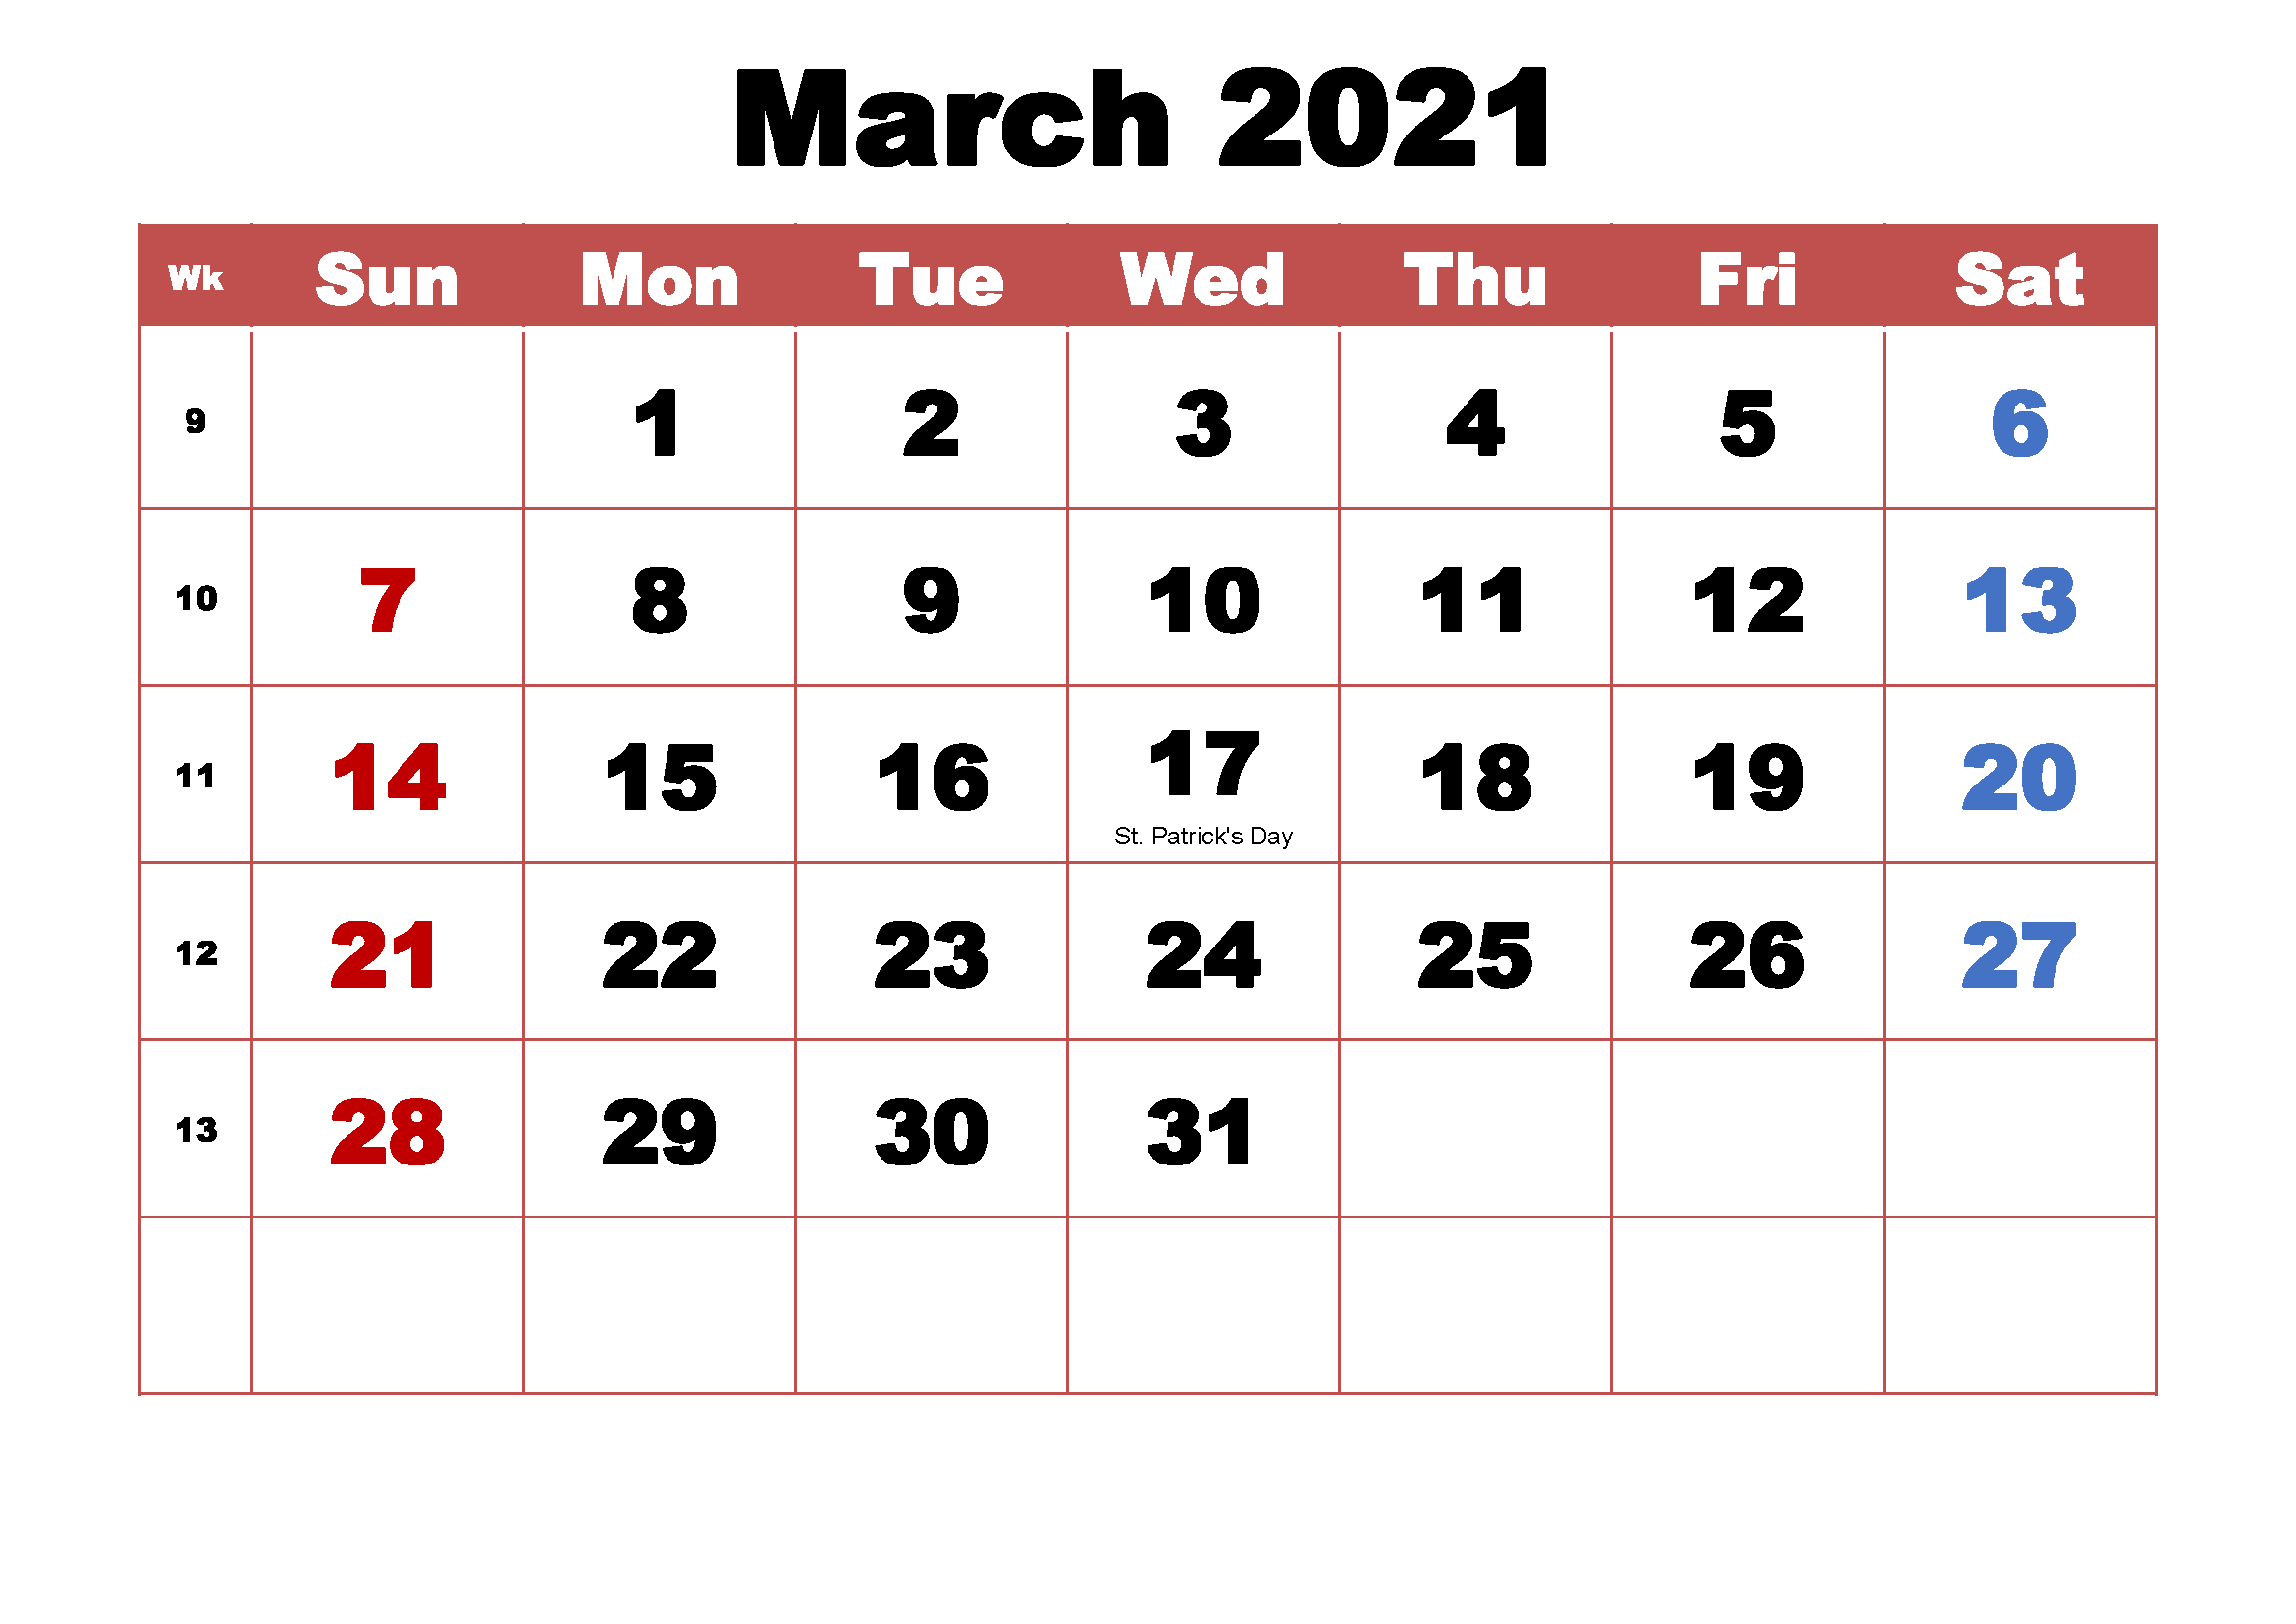 March 2021 Calendar With Holidays Download